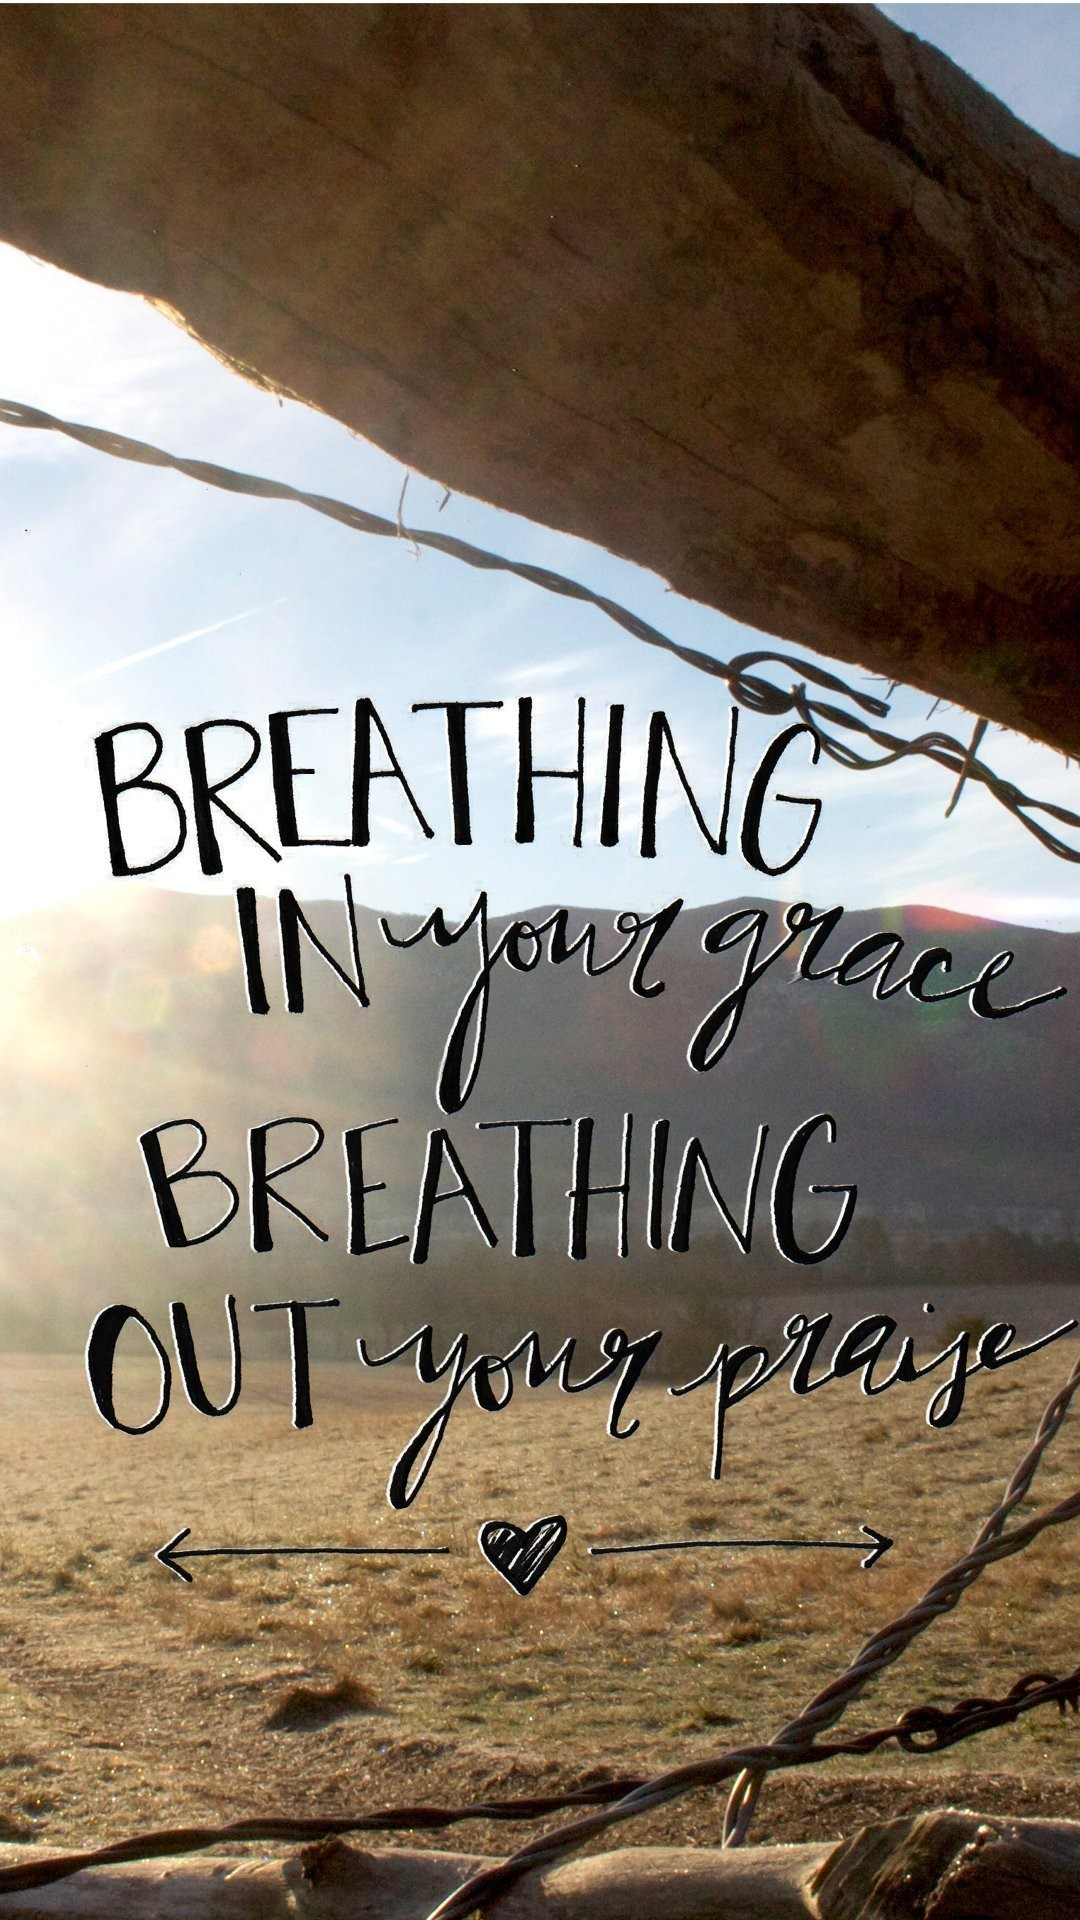 Breathing in Your Grace Breathing Out Your Praise Colorful Religion Wisdom  Motivating Christian HD iPhone 6 plus Wallpaper